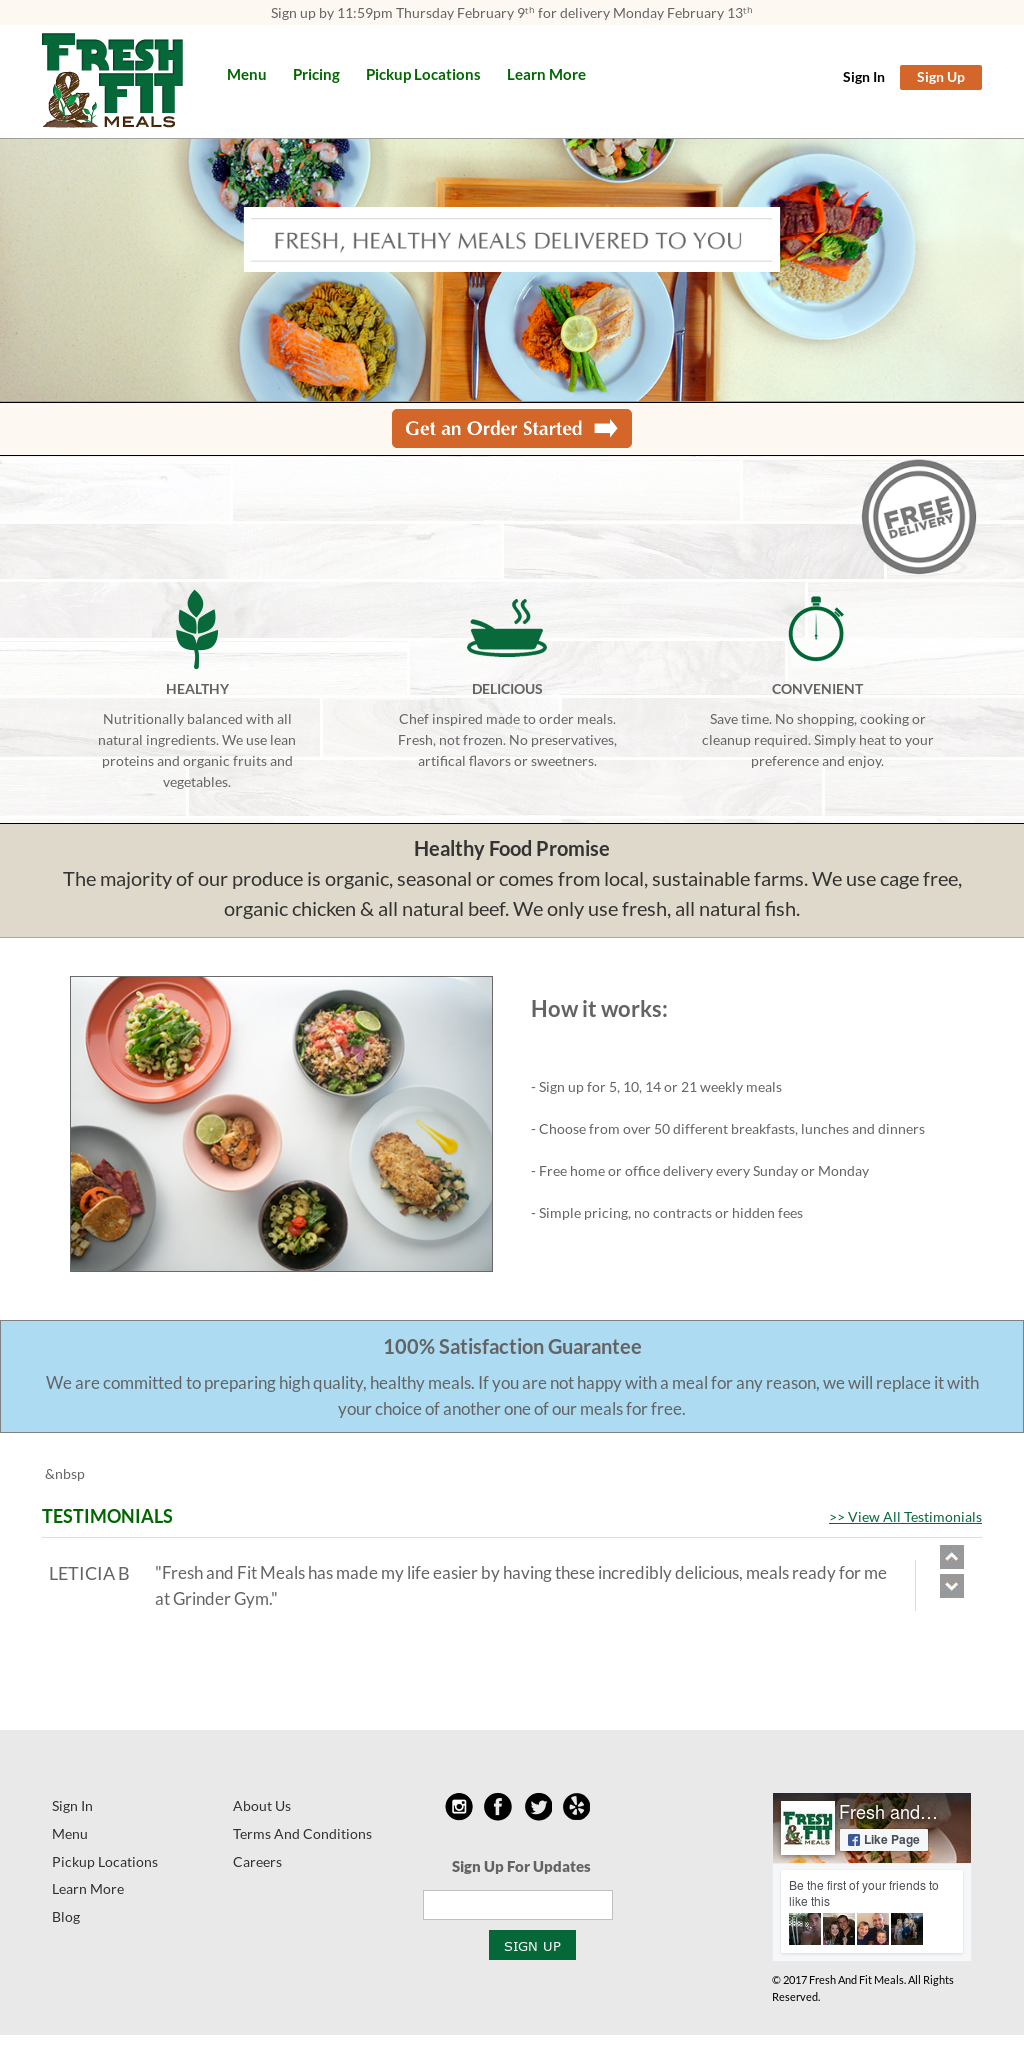 Fresh & Fit Meals Competitors, Revenue and Employees - Owler